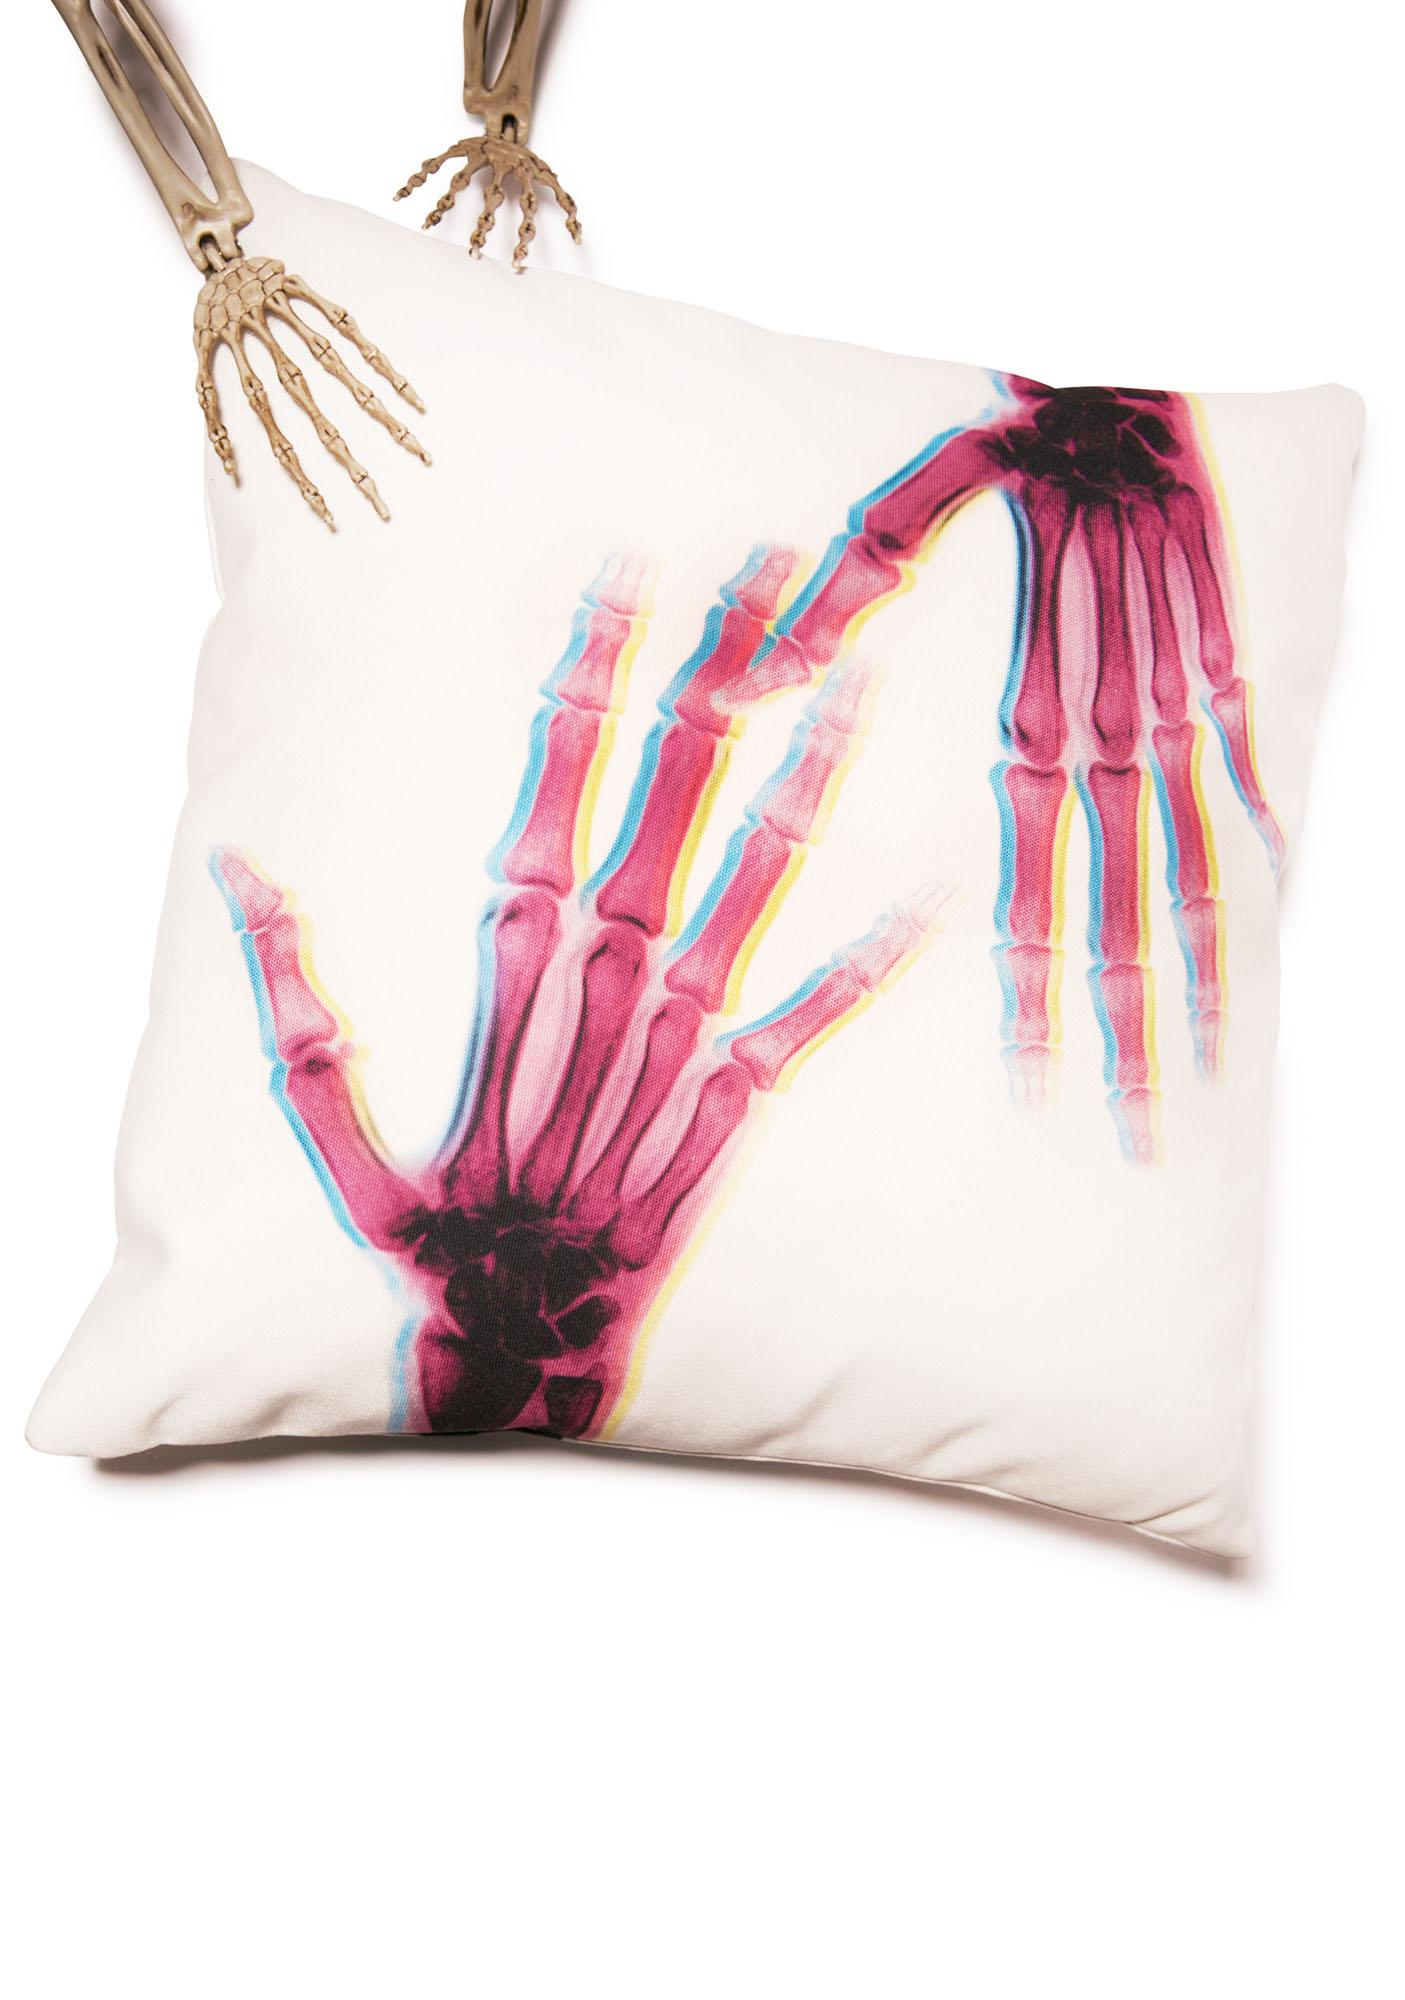 Idle Hands X-Ray Pillow